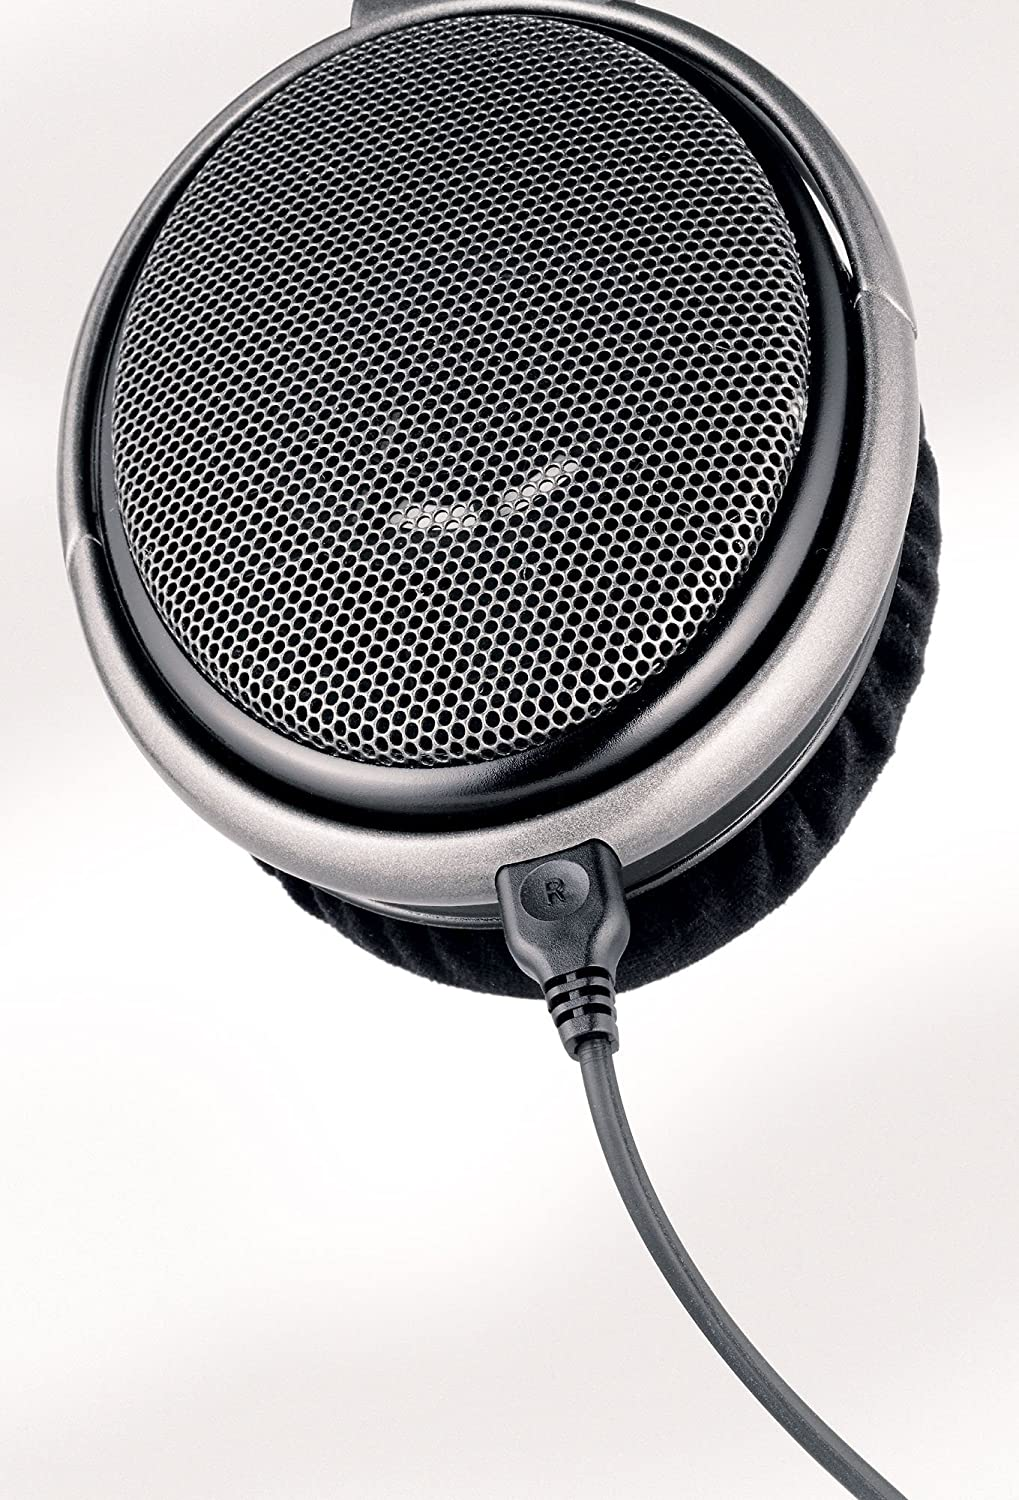 Enjoy Better Sound Quality with the Sennheiser HD 650